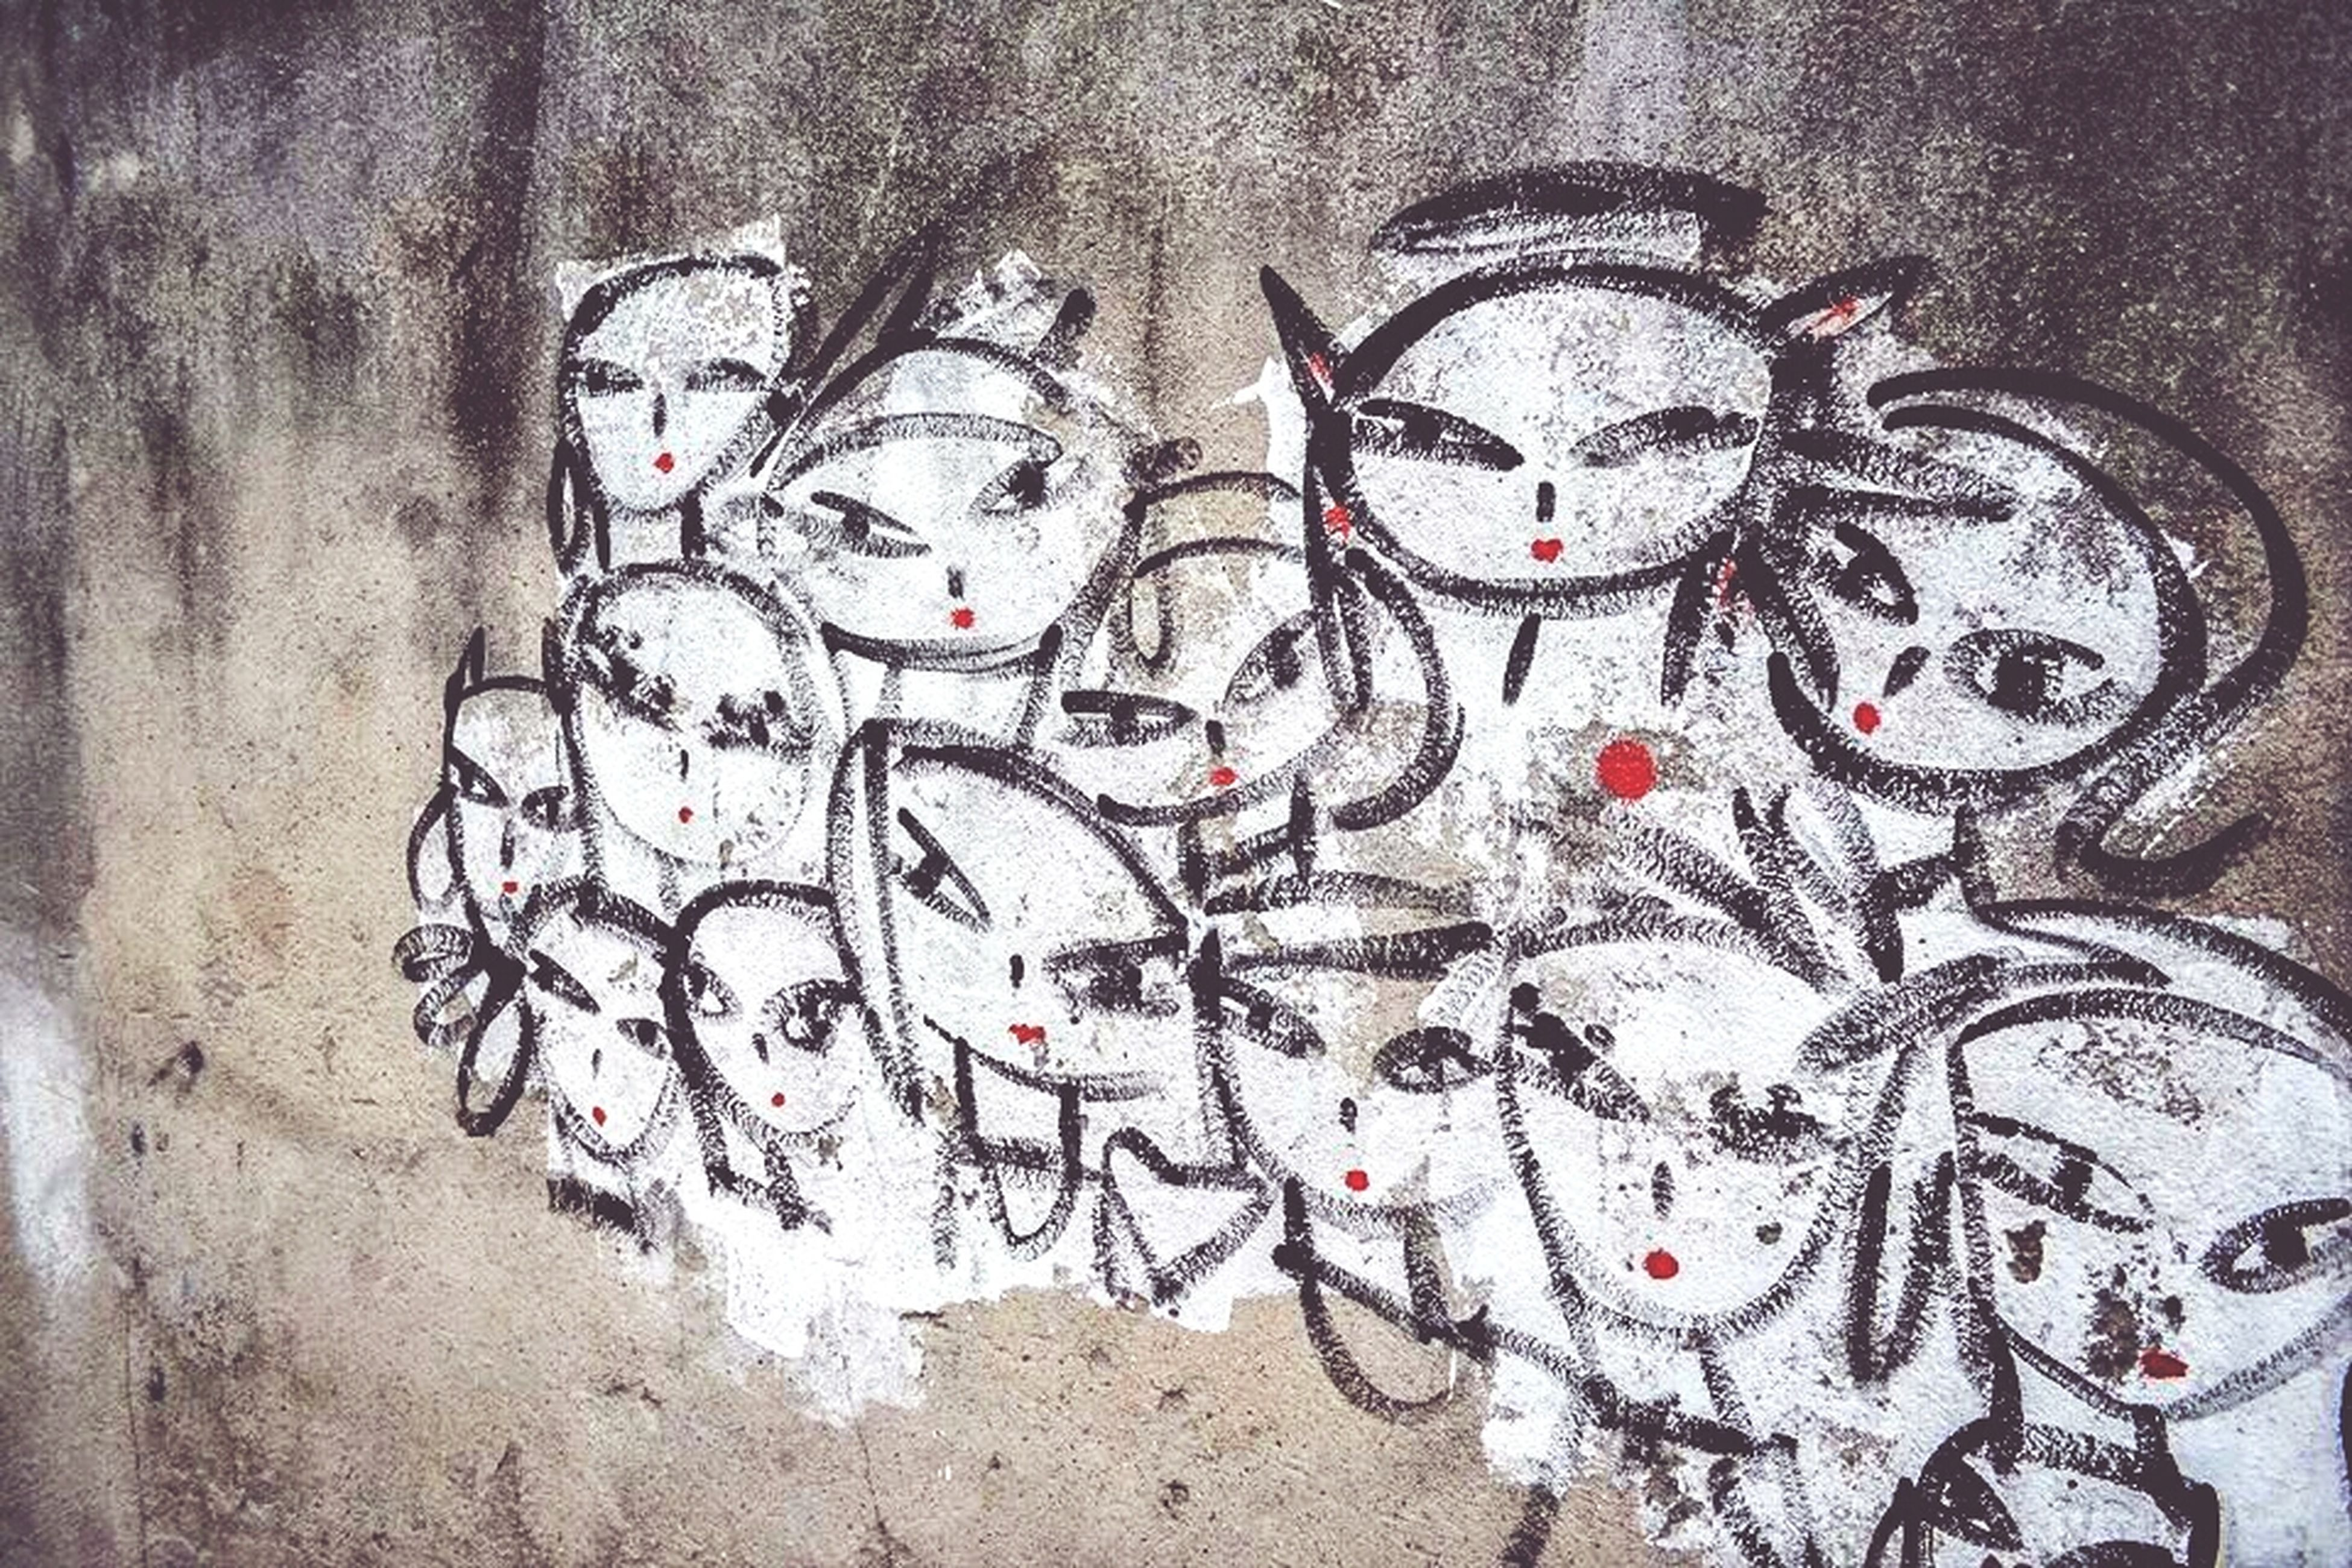 graffiti, wall - building feature, creativity, art, art and craft, full frame, wall, textured, close-up, street art, old, built structure, backgrounds, architecture, paint, weathered, multi colored, pattern, no people, indoors